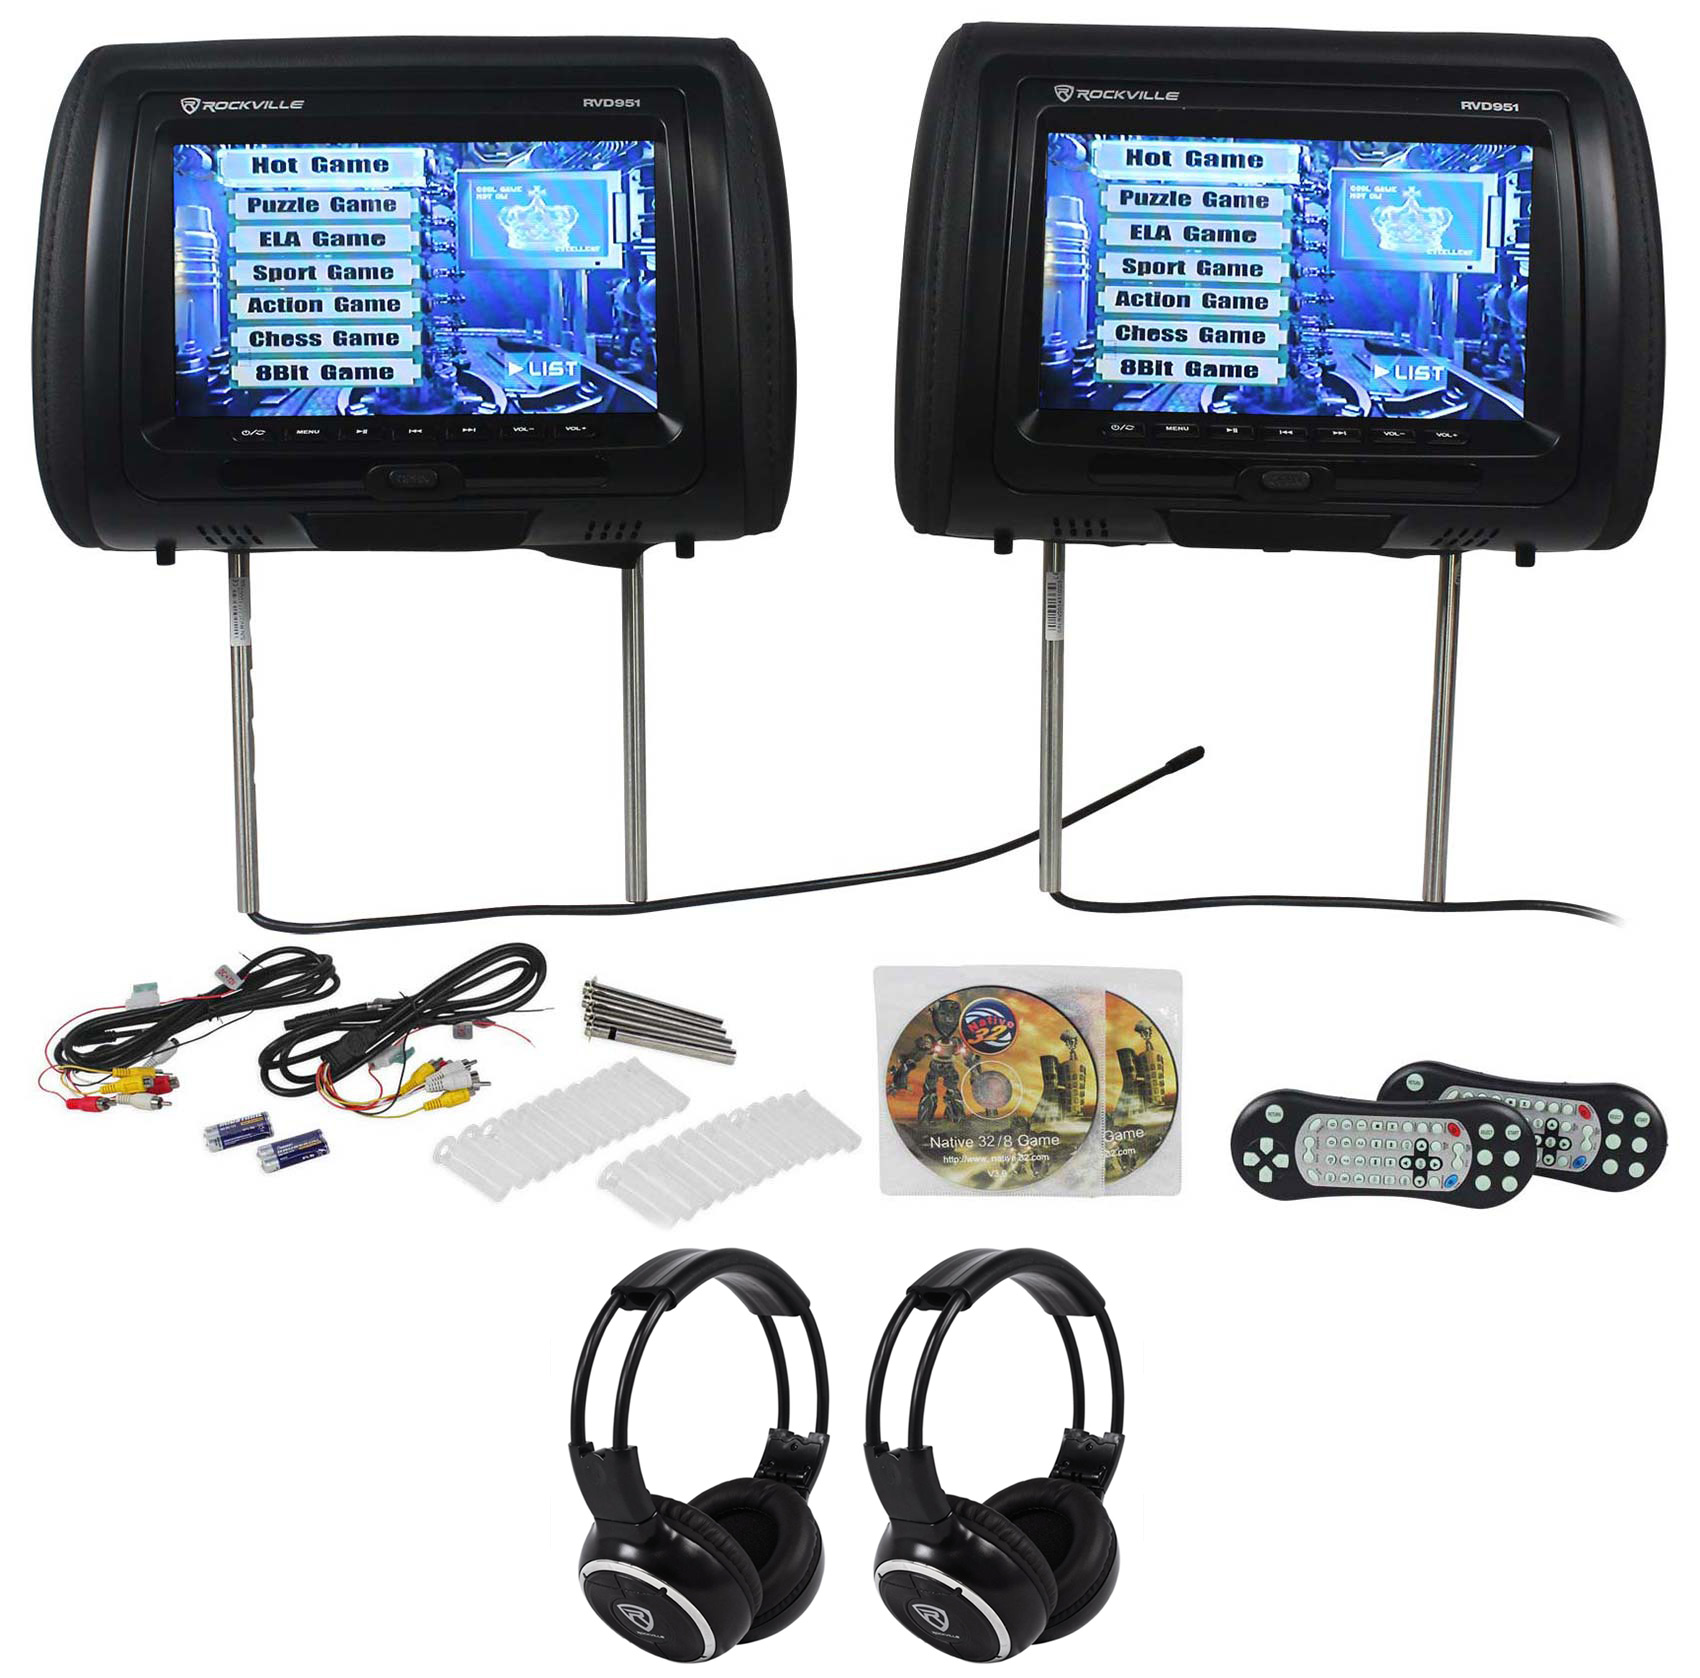 "Rockville RVD951-BK 9"" Black Dual DVD/HDMI Car Headrest Monitors+2 Headphones"